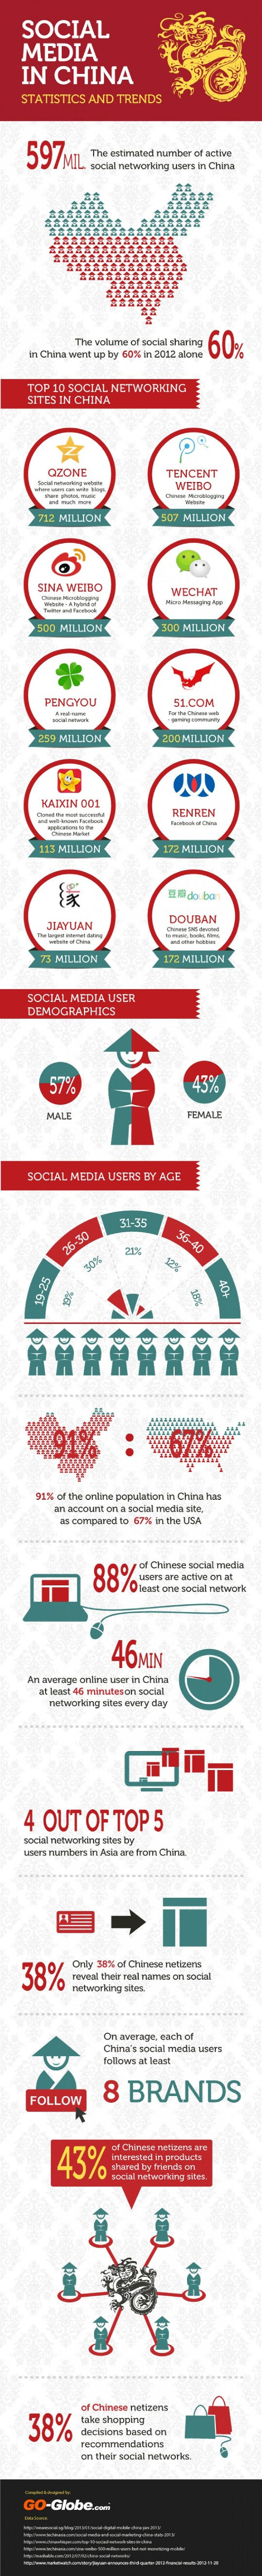 1.Social Media in China Trends and Statistics